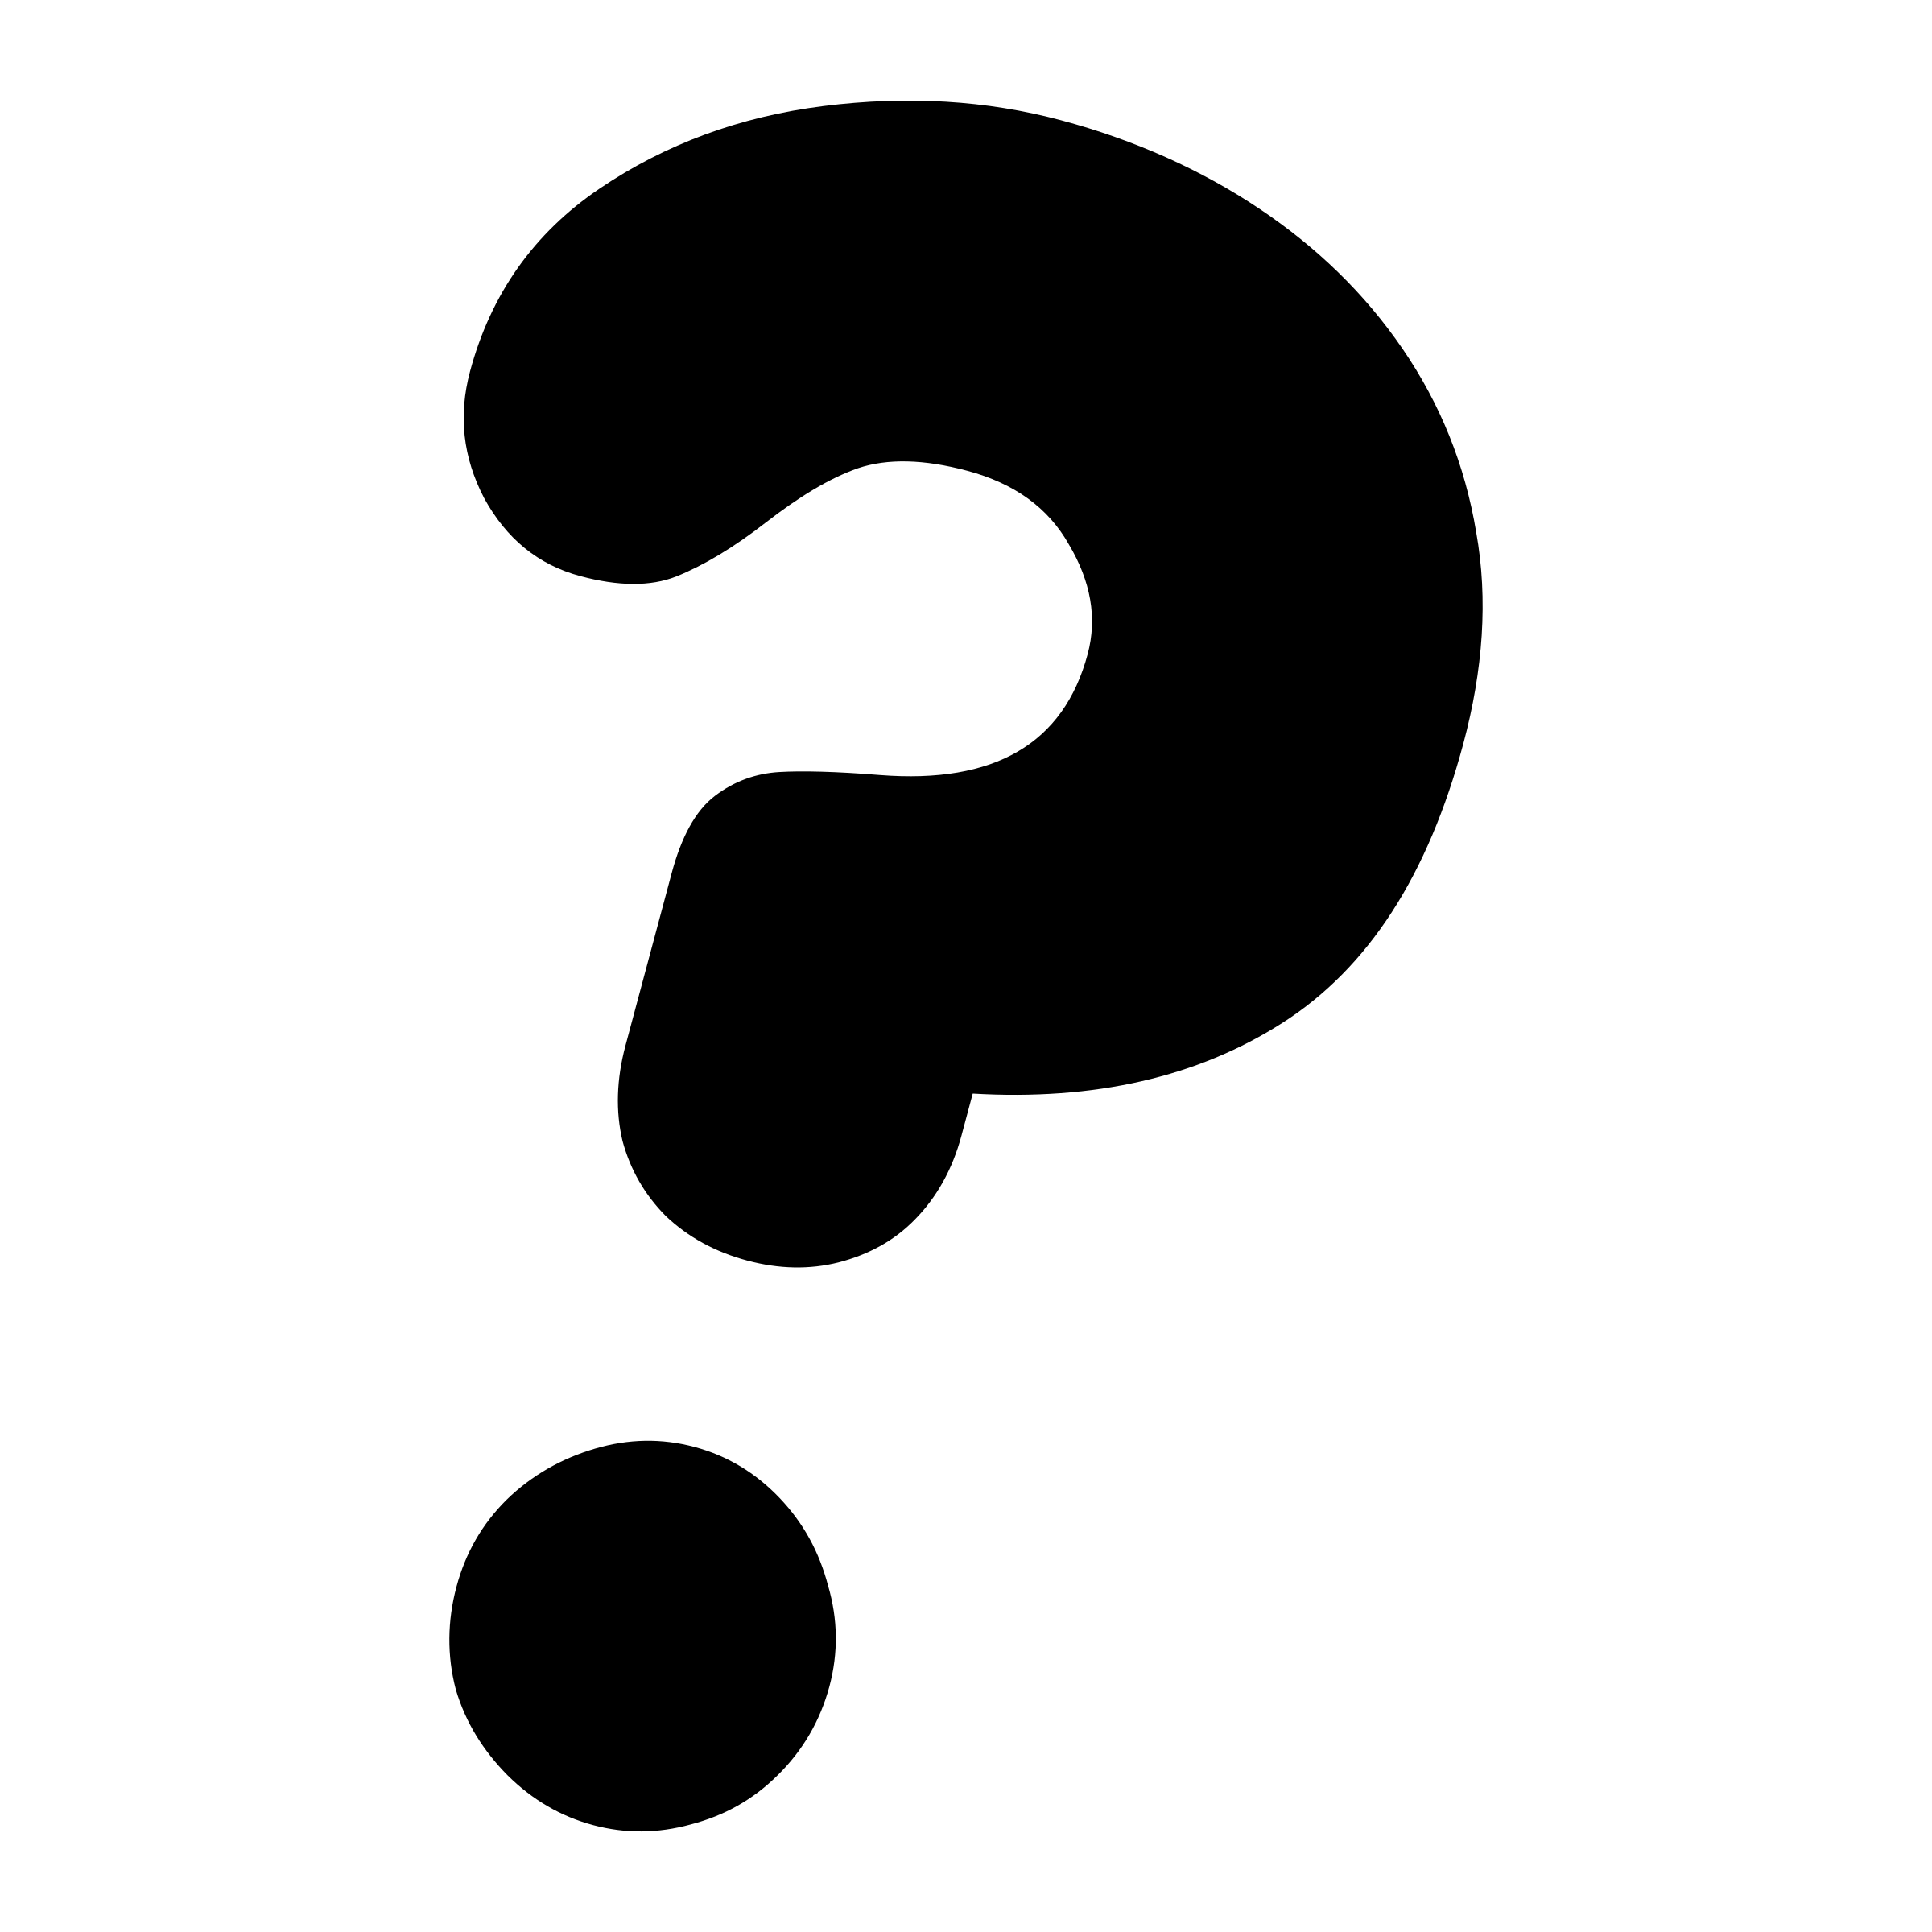 Question mark question clipart free clip art image image.